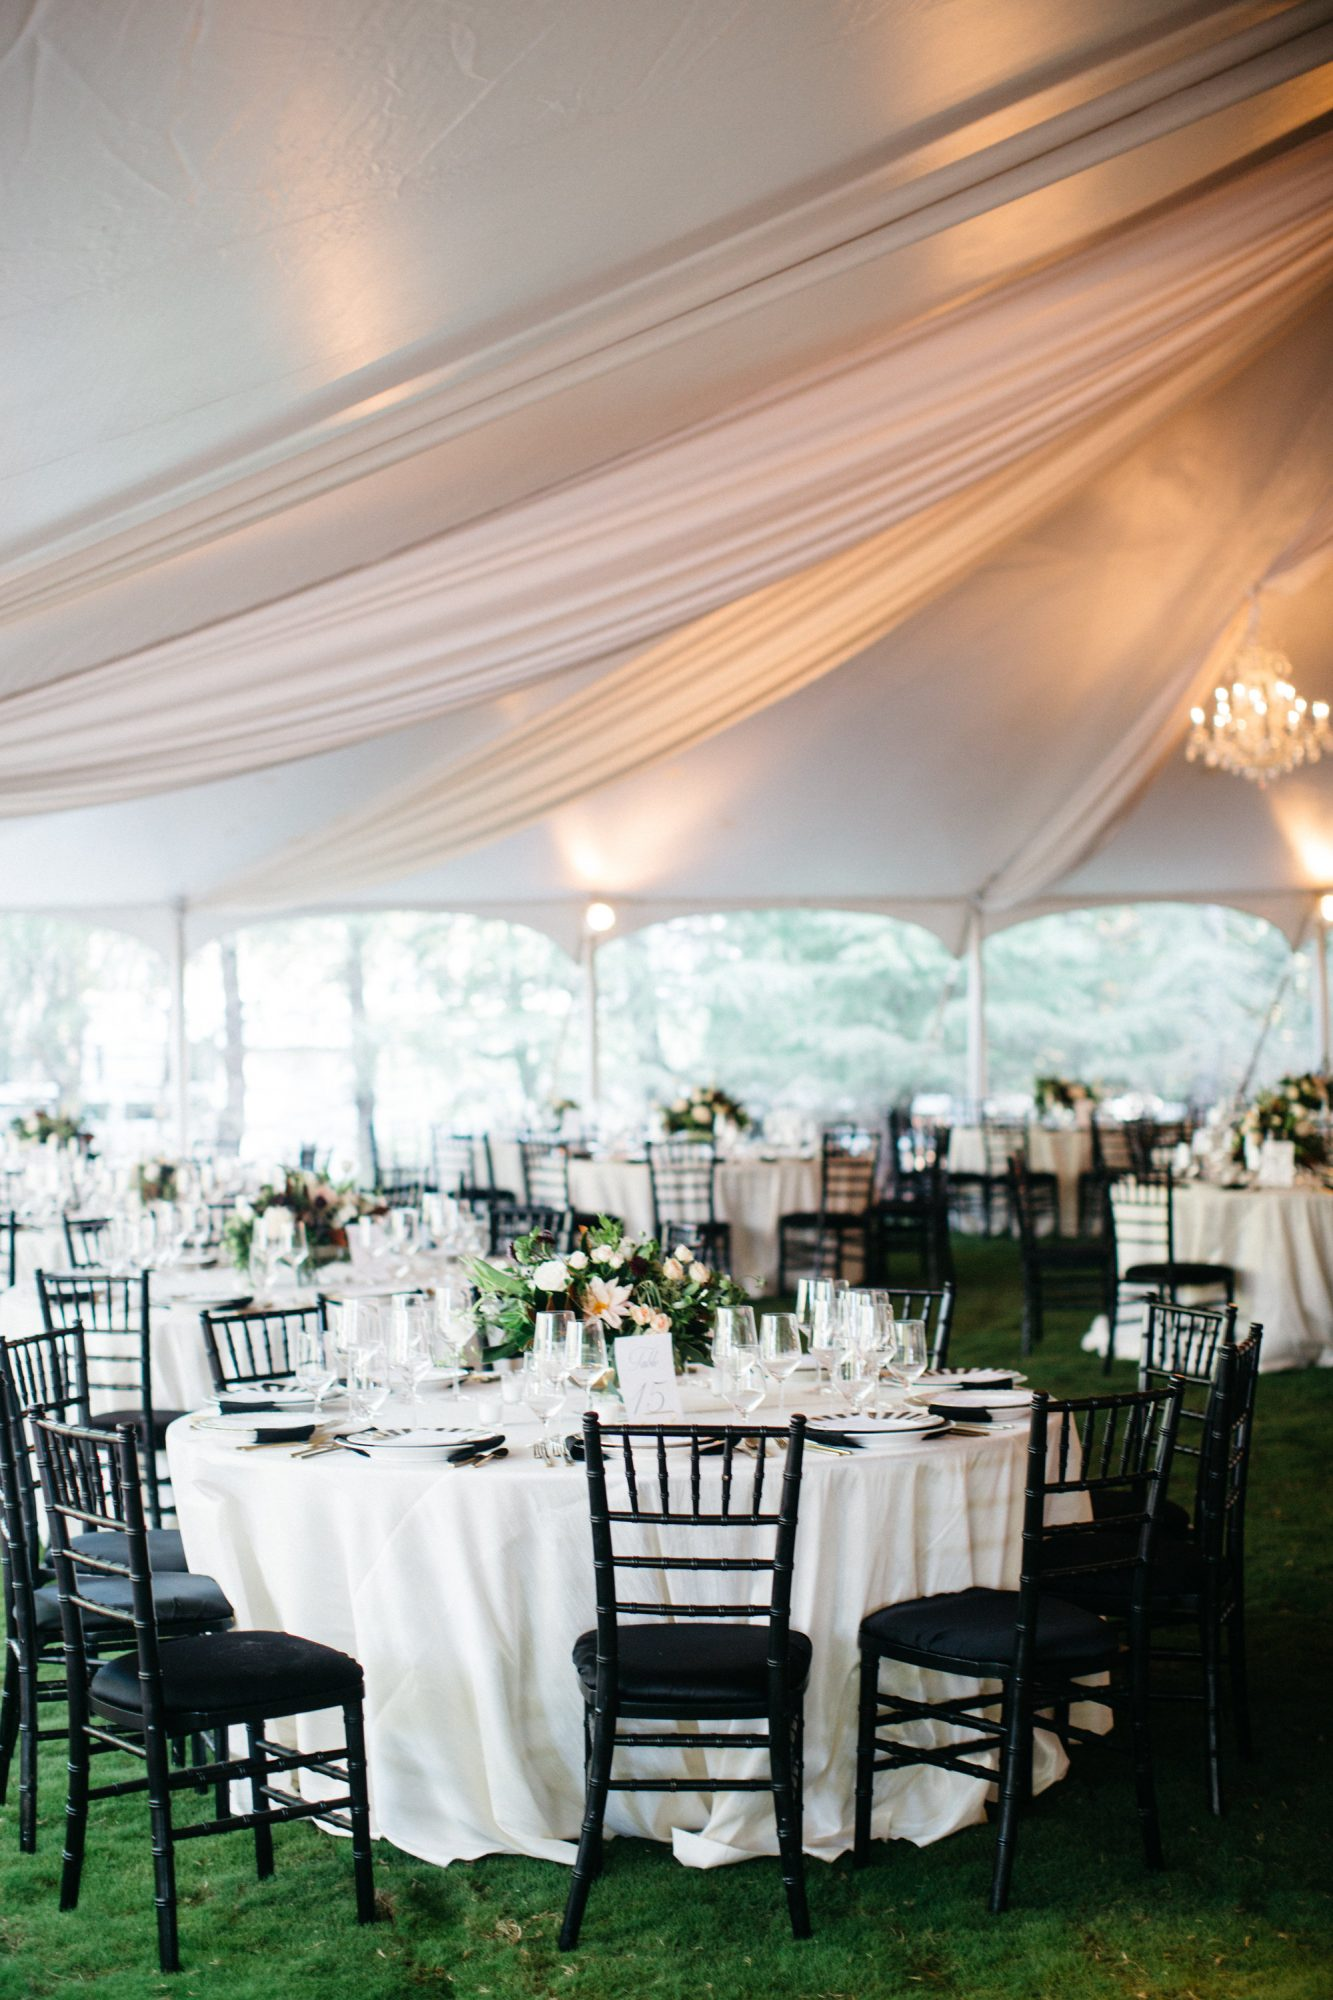 Tented Lawn Wedding Table